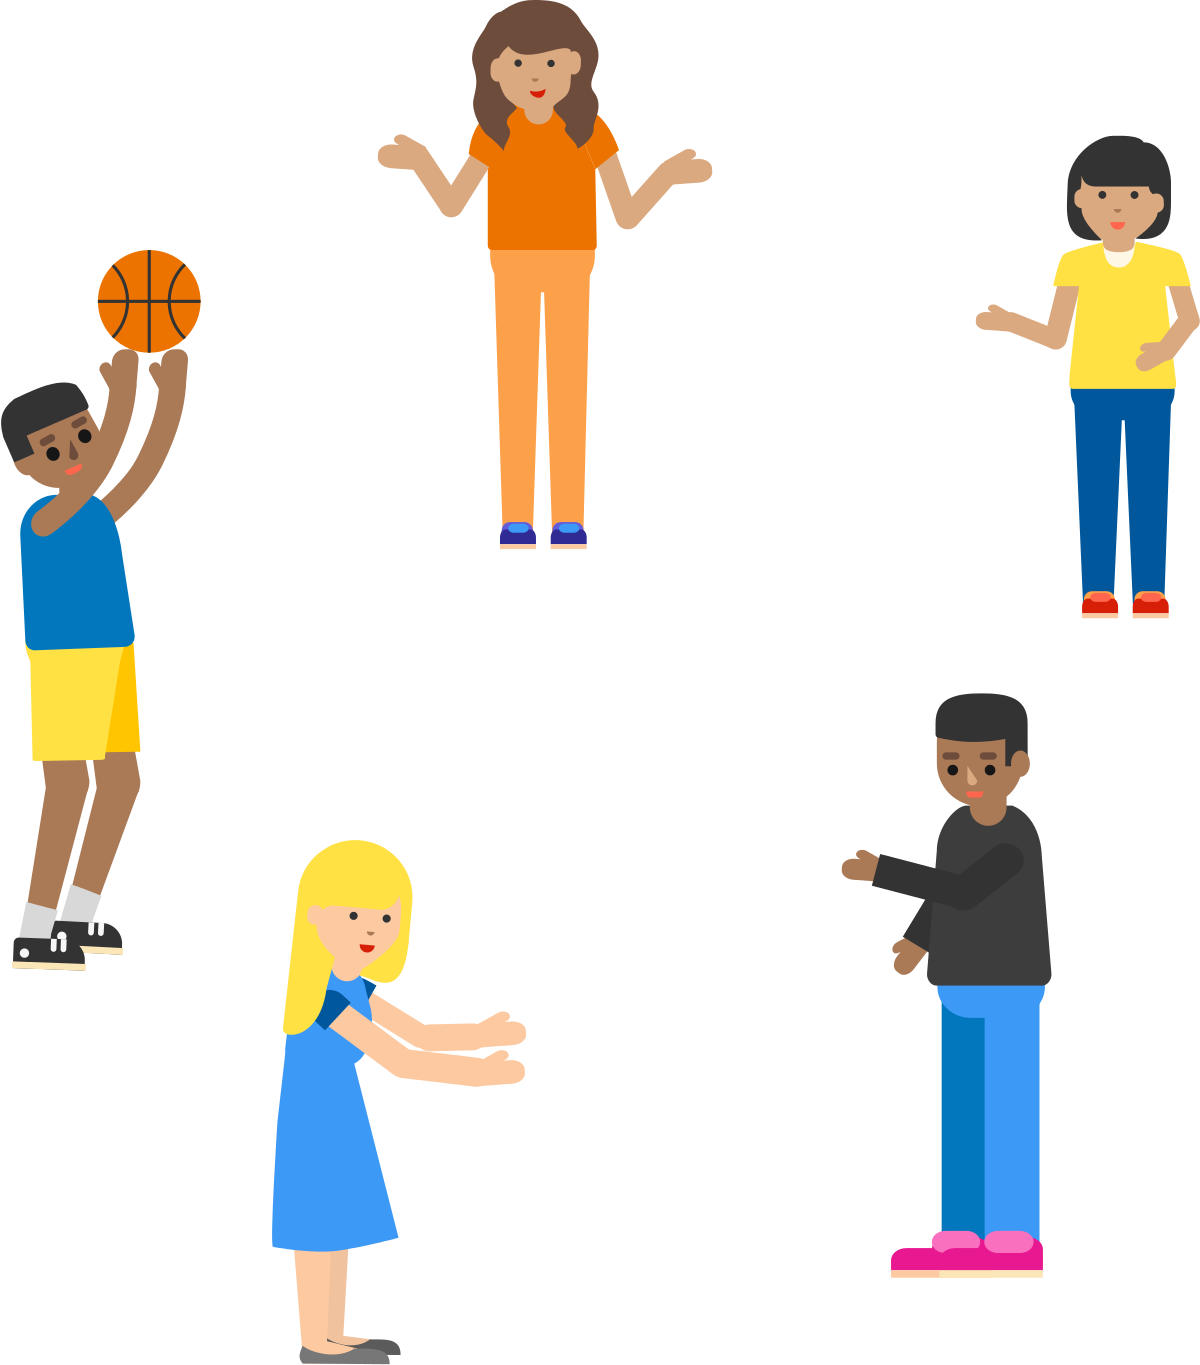 A boy playing basketball with his friends clipart clipart library stock Discrete Mathematics Problem: A Ball Passing Game - Daniel Xiang ... clipart library stock